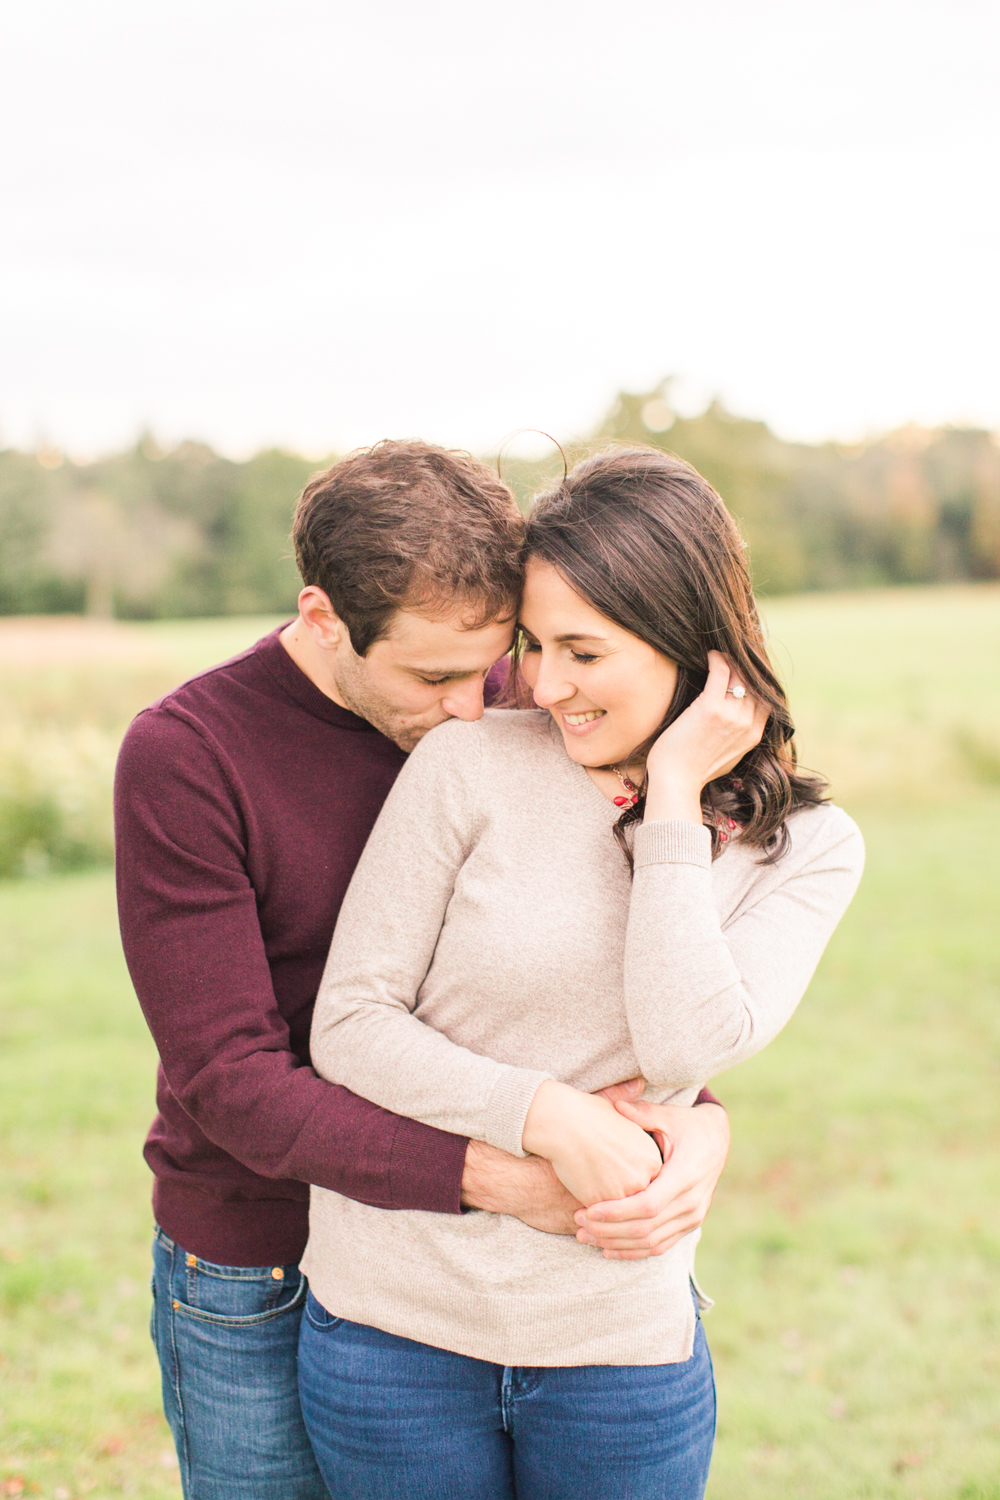 waveny-park-engagement-session-new-canaan-connecticut-wedding-photographer-shaina-lee-photographer-photo